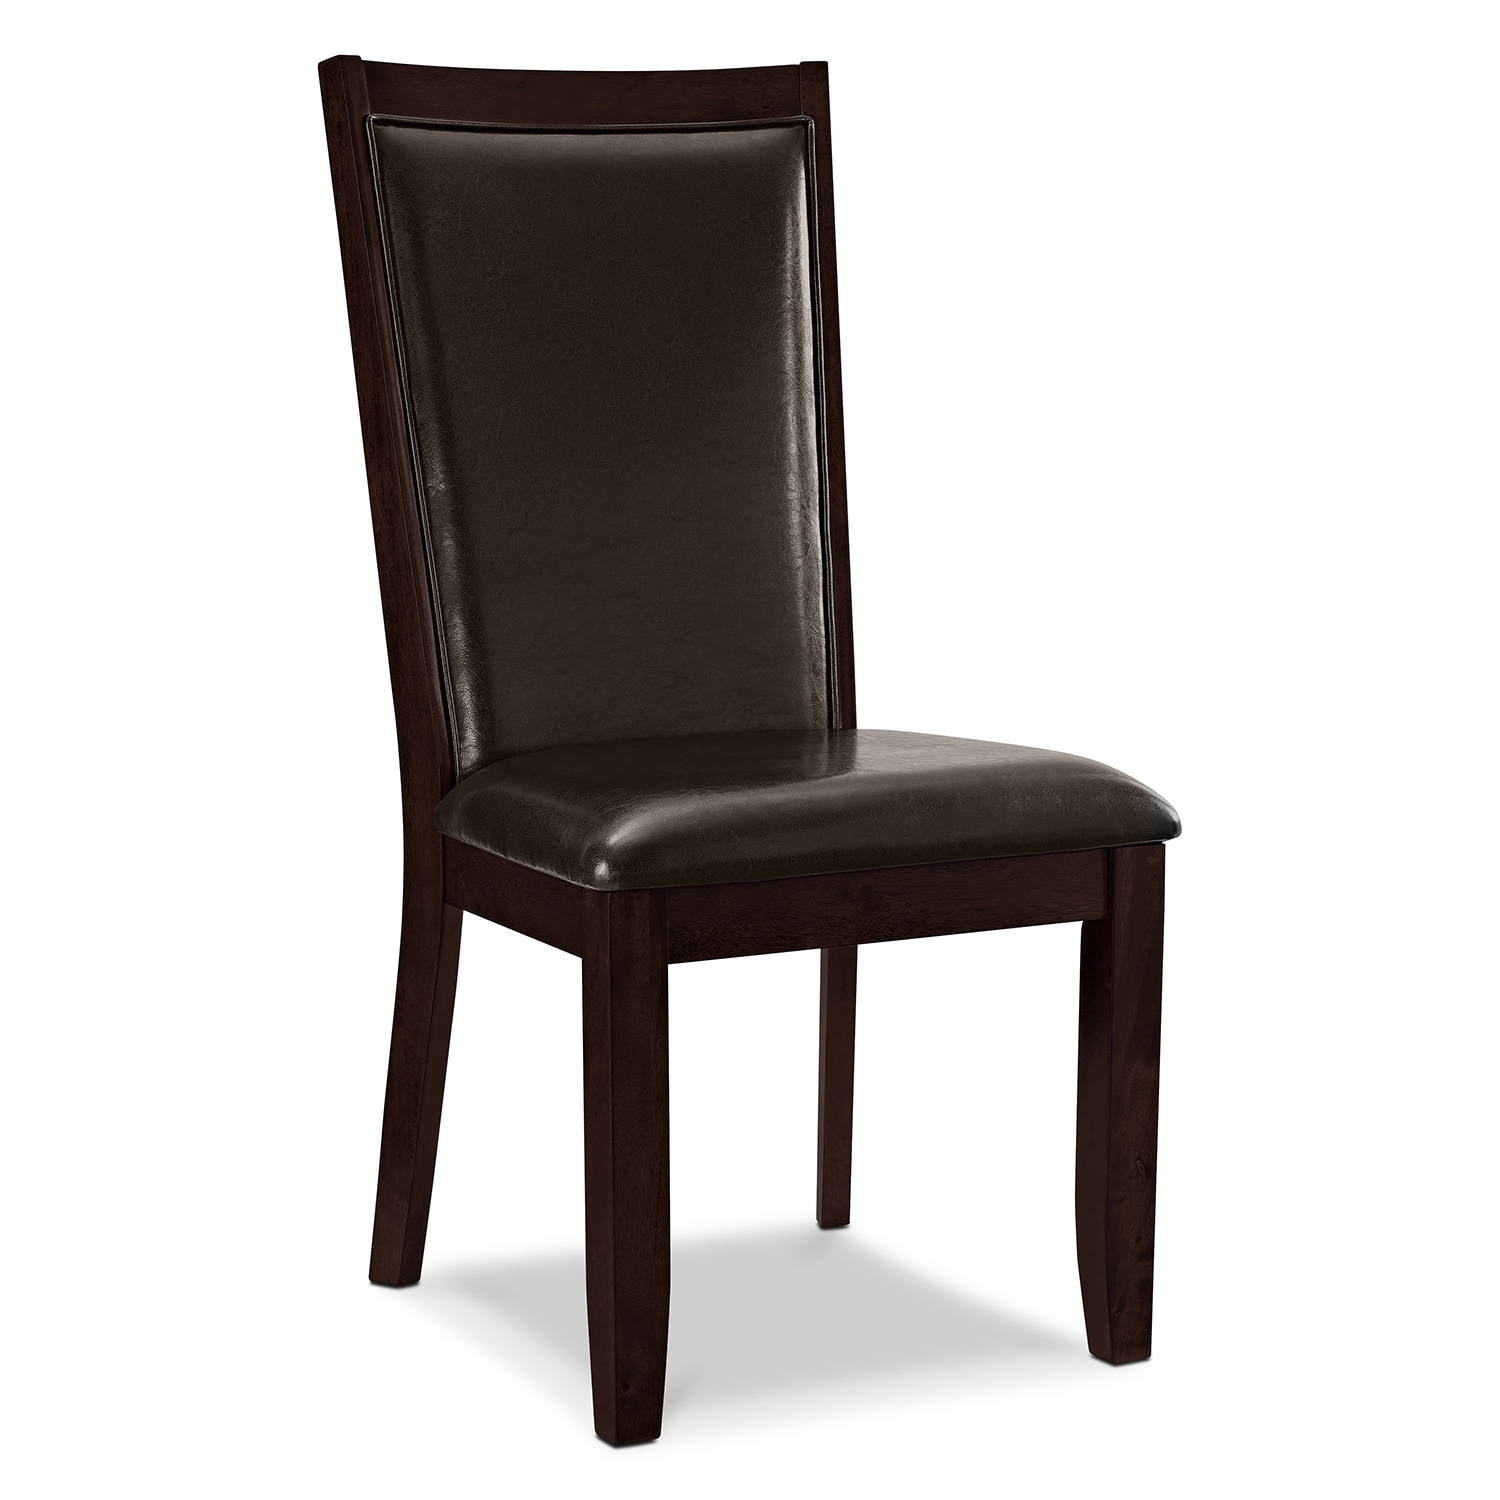 Dining Room Furniture - Paragon II Chair